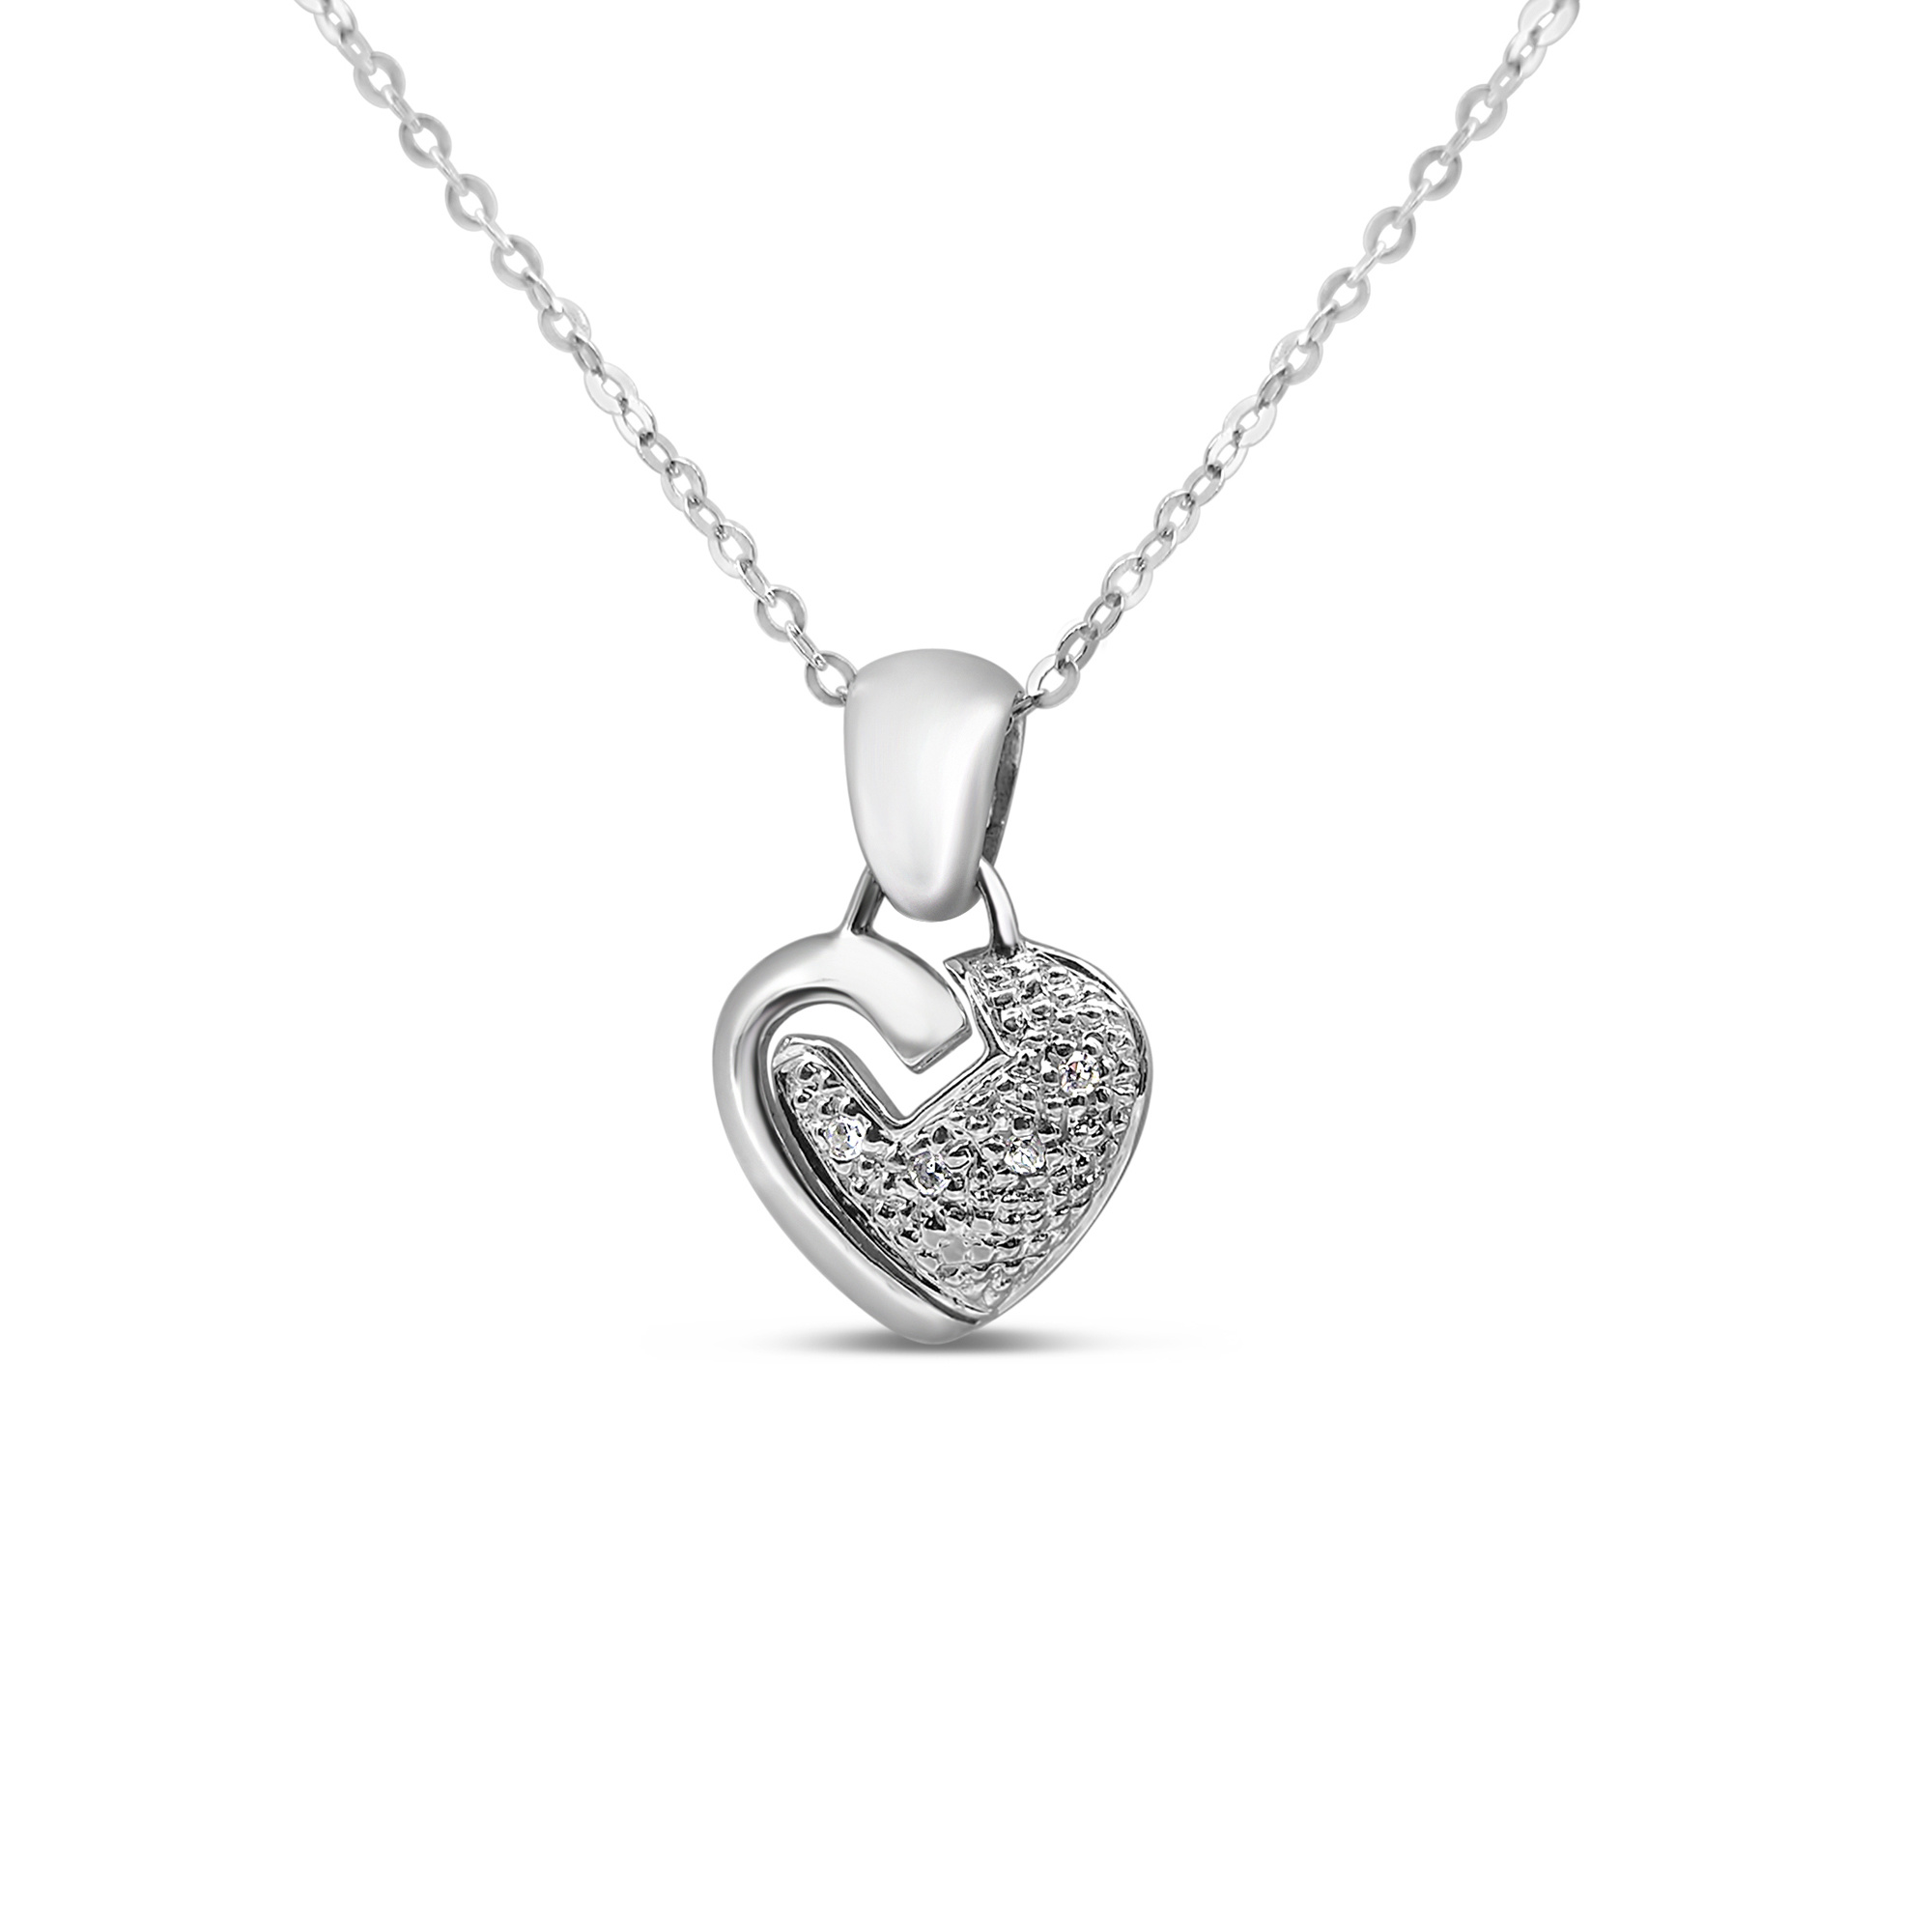 18kt white gold heart pendant with 0.02 ct diamonds